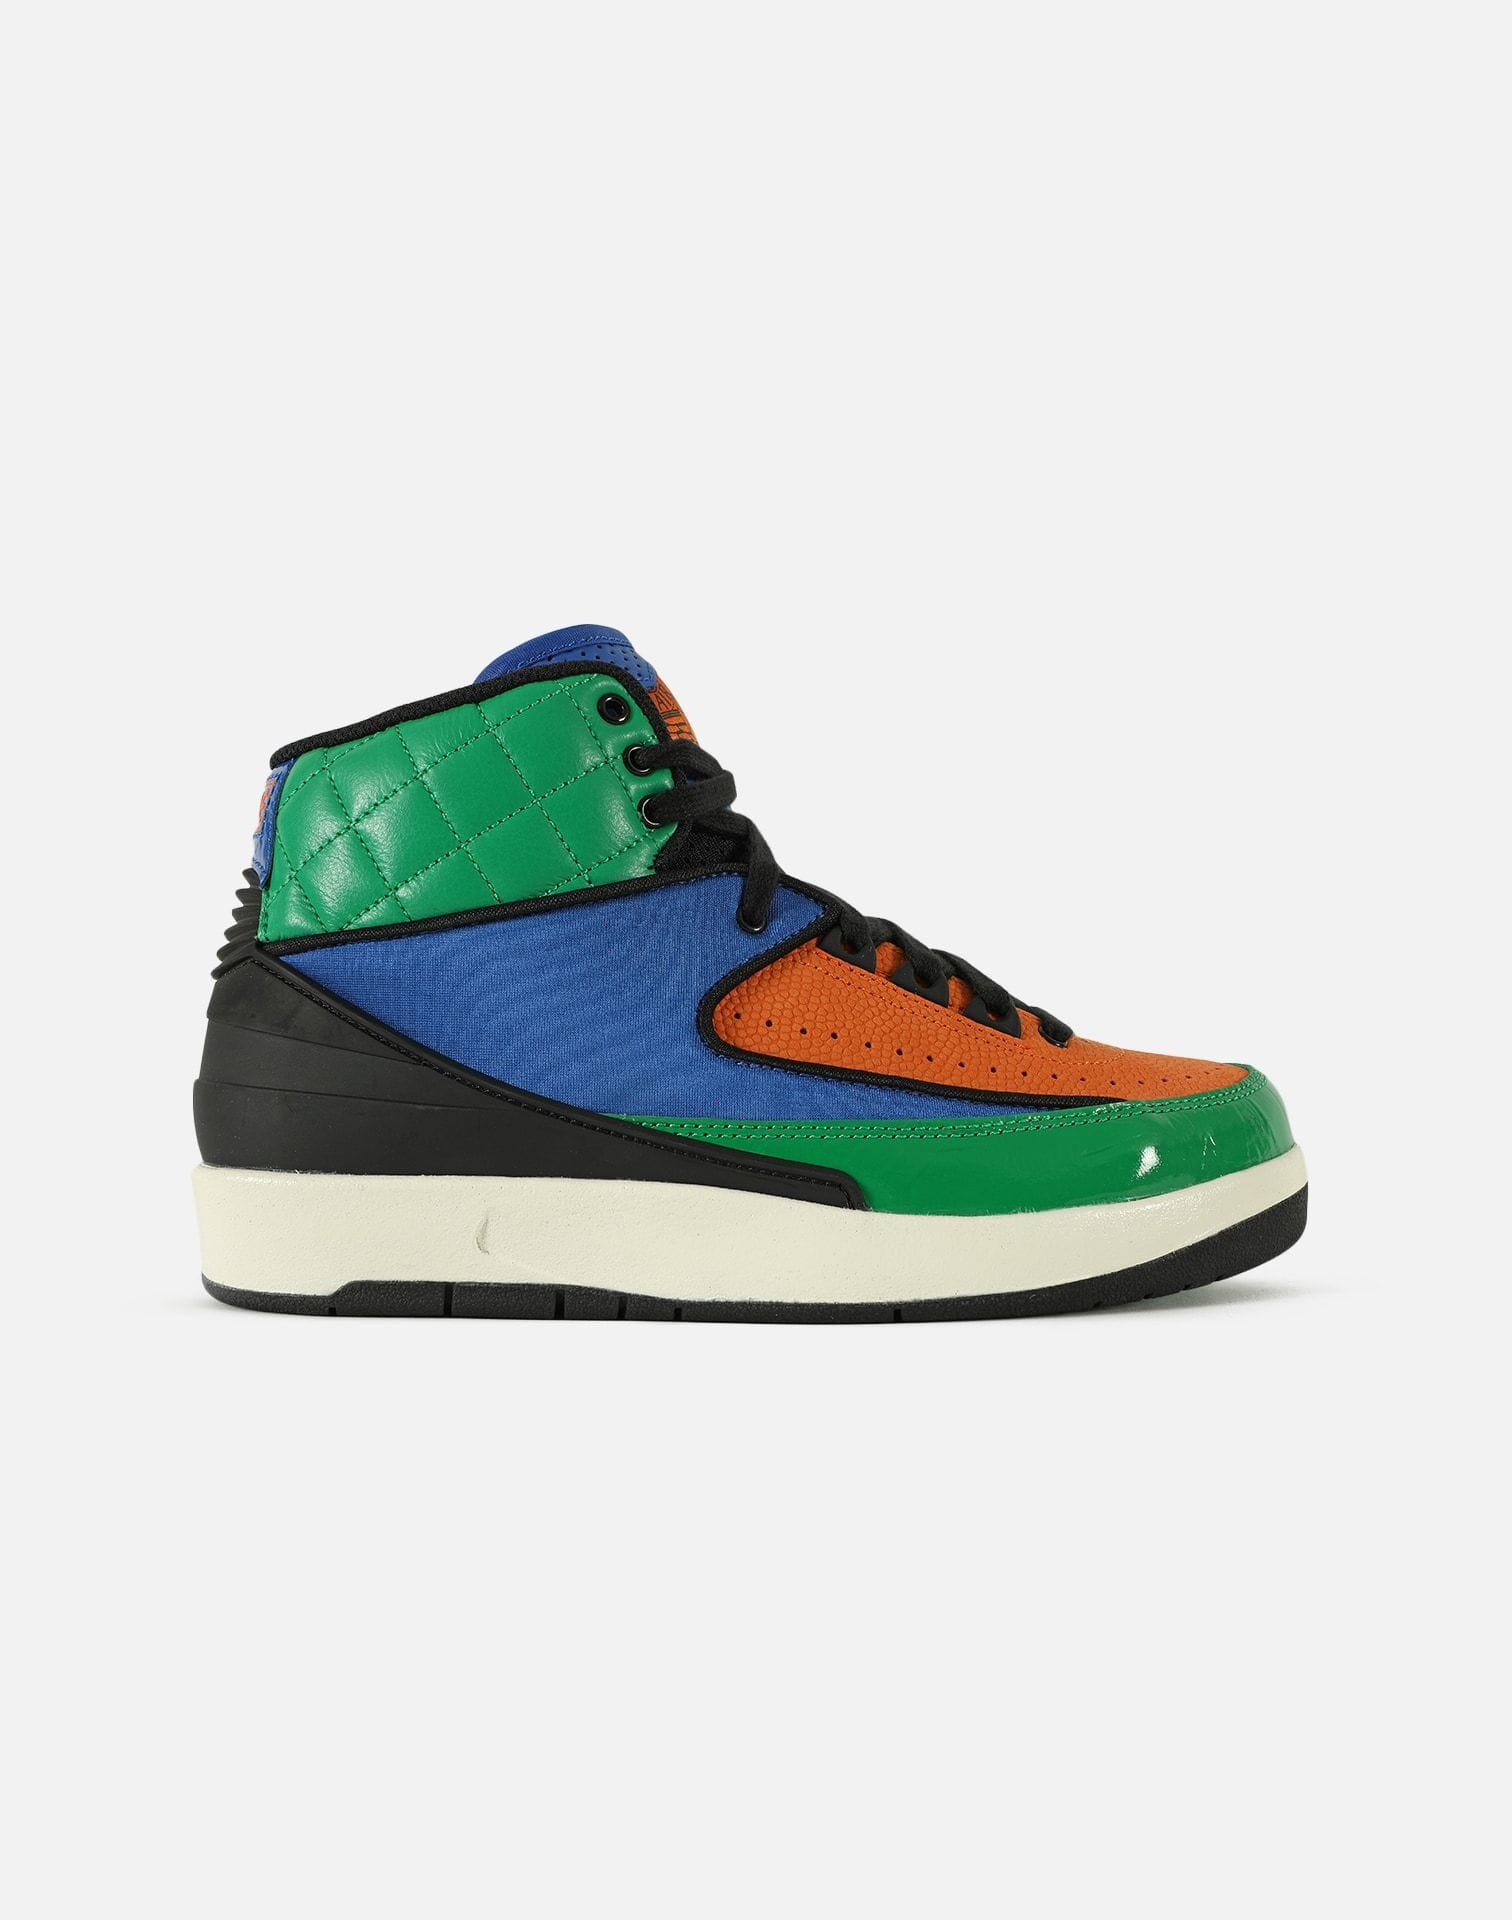 Jordan WMNS AIR JORDAN RETRO 2 'RIVALS'